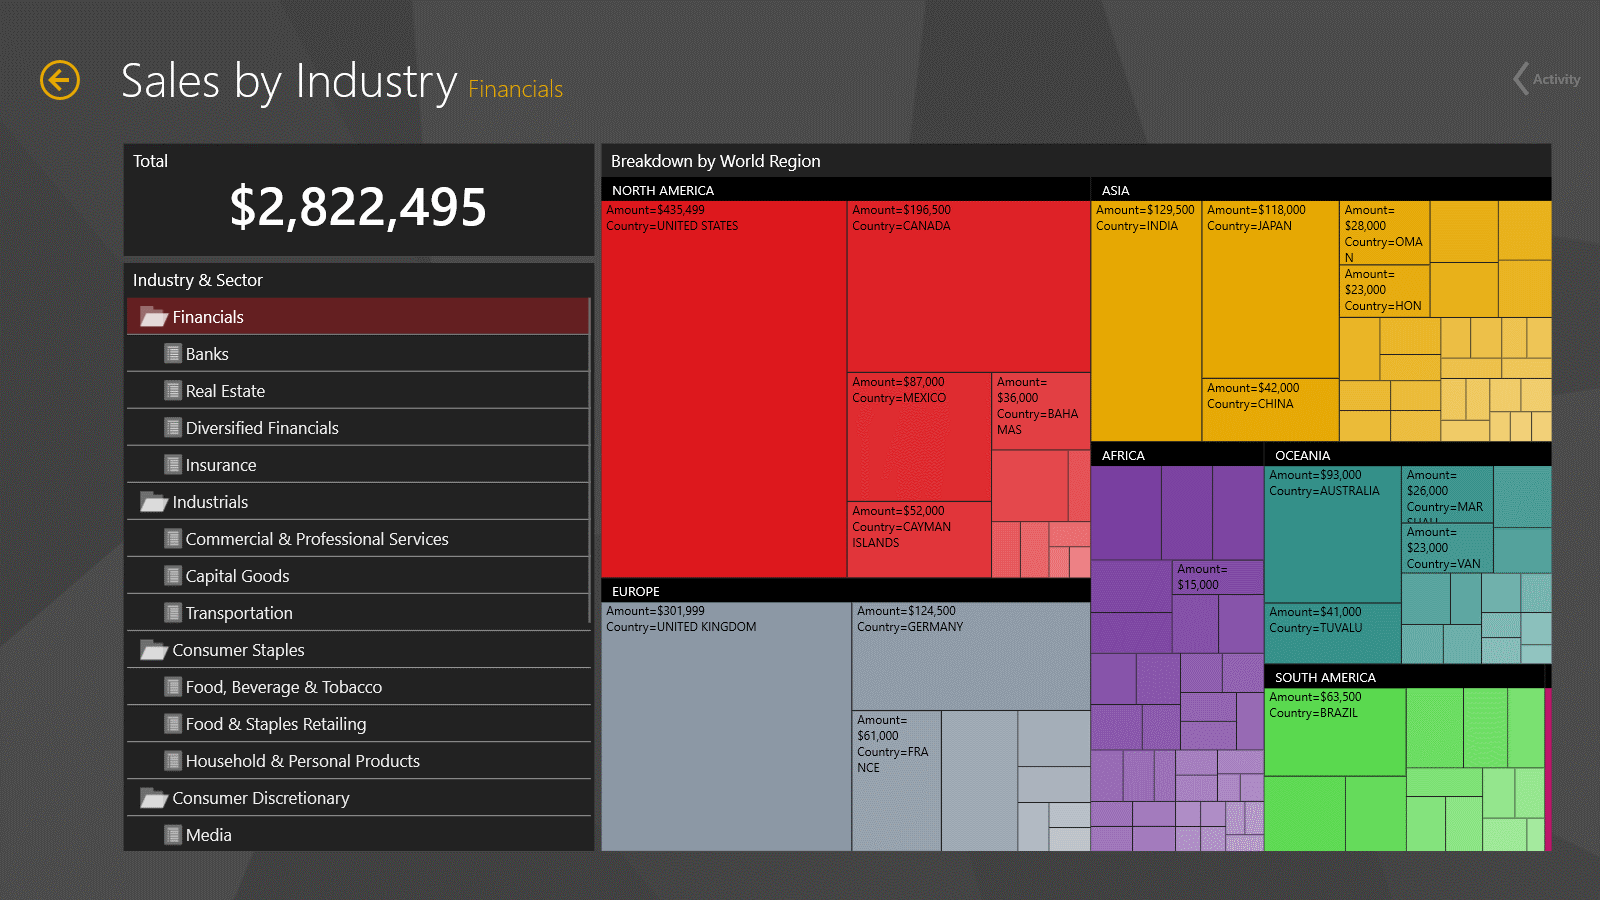 Dashboard: Sales by Industry